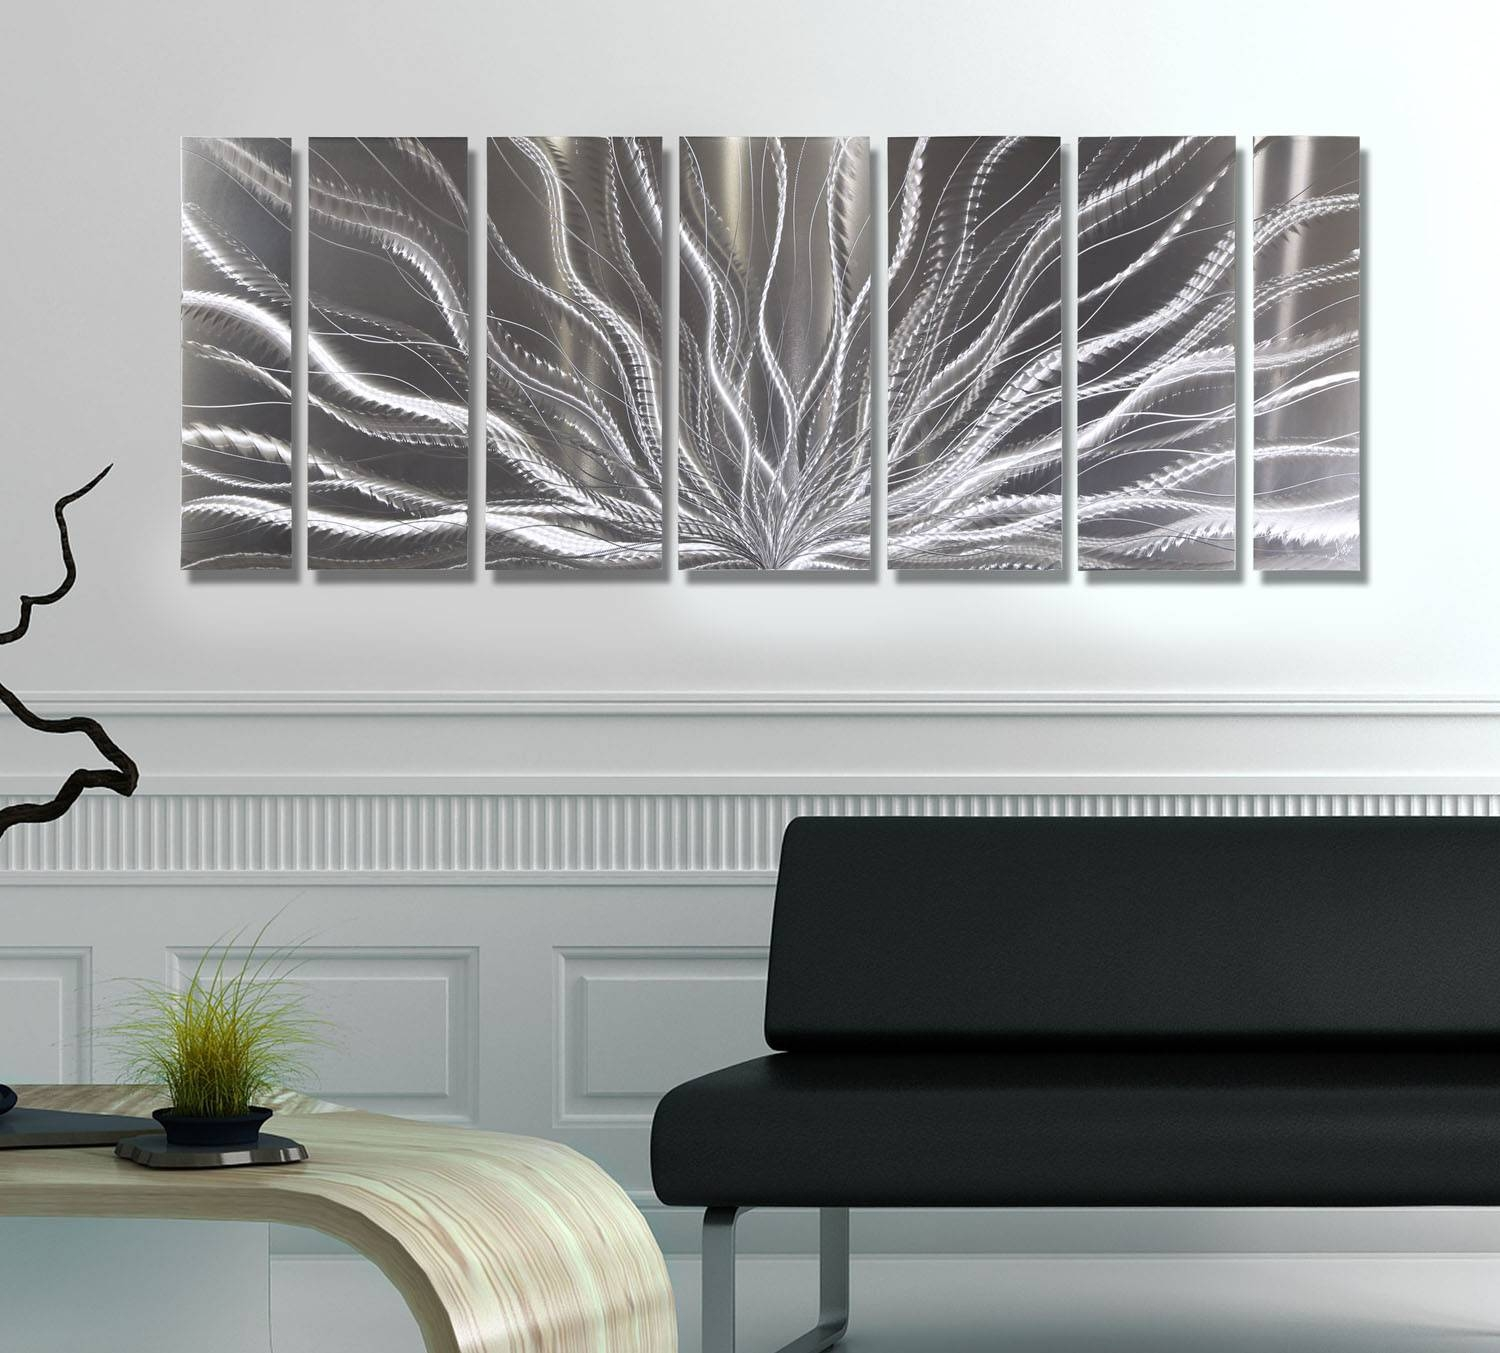 Galactic Expanse – All Natural Silver Metallic Wall Hanging For Best And Newest Modern Wall Art For Sale (Gallery 3 of 20)